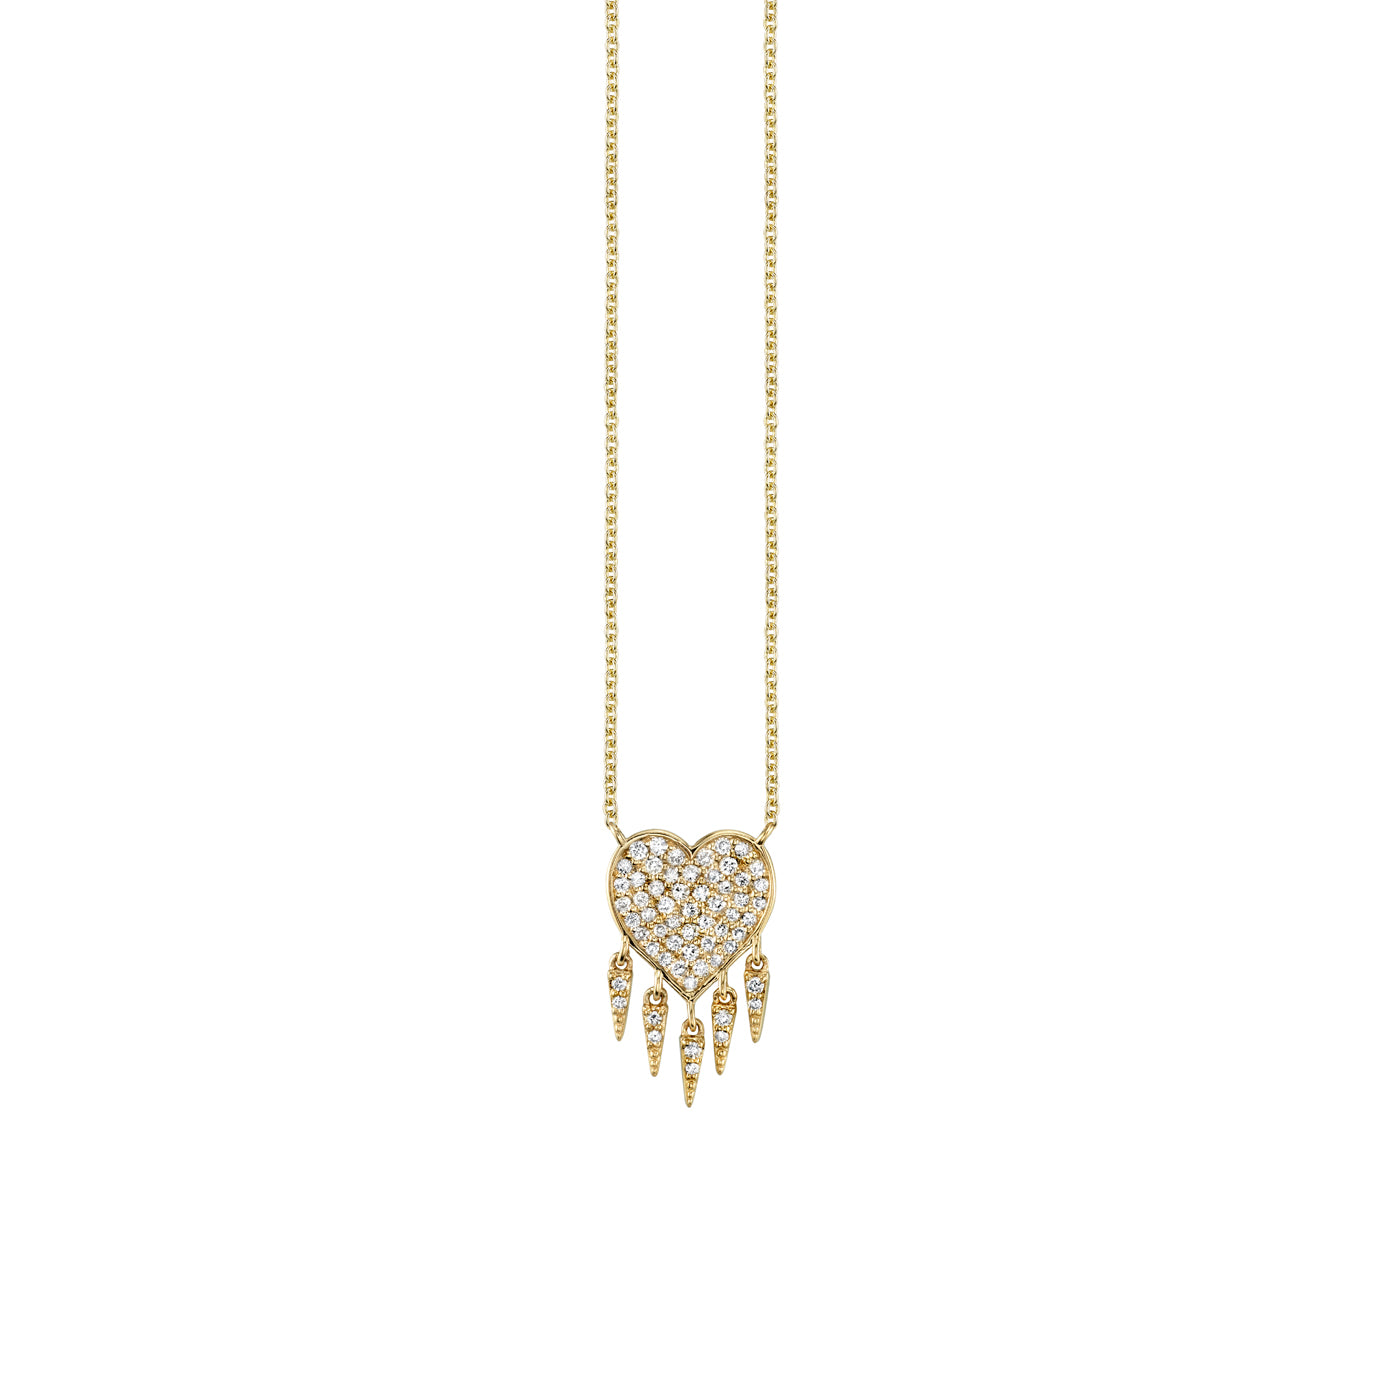 Pavé Diamond Fringe Heart Necklace in Gold